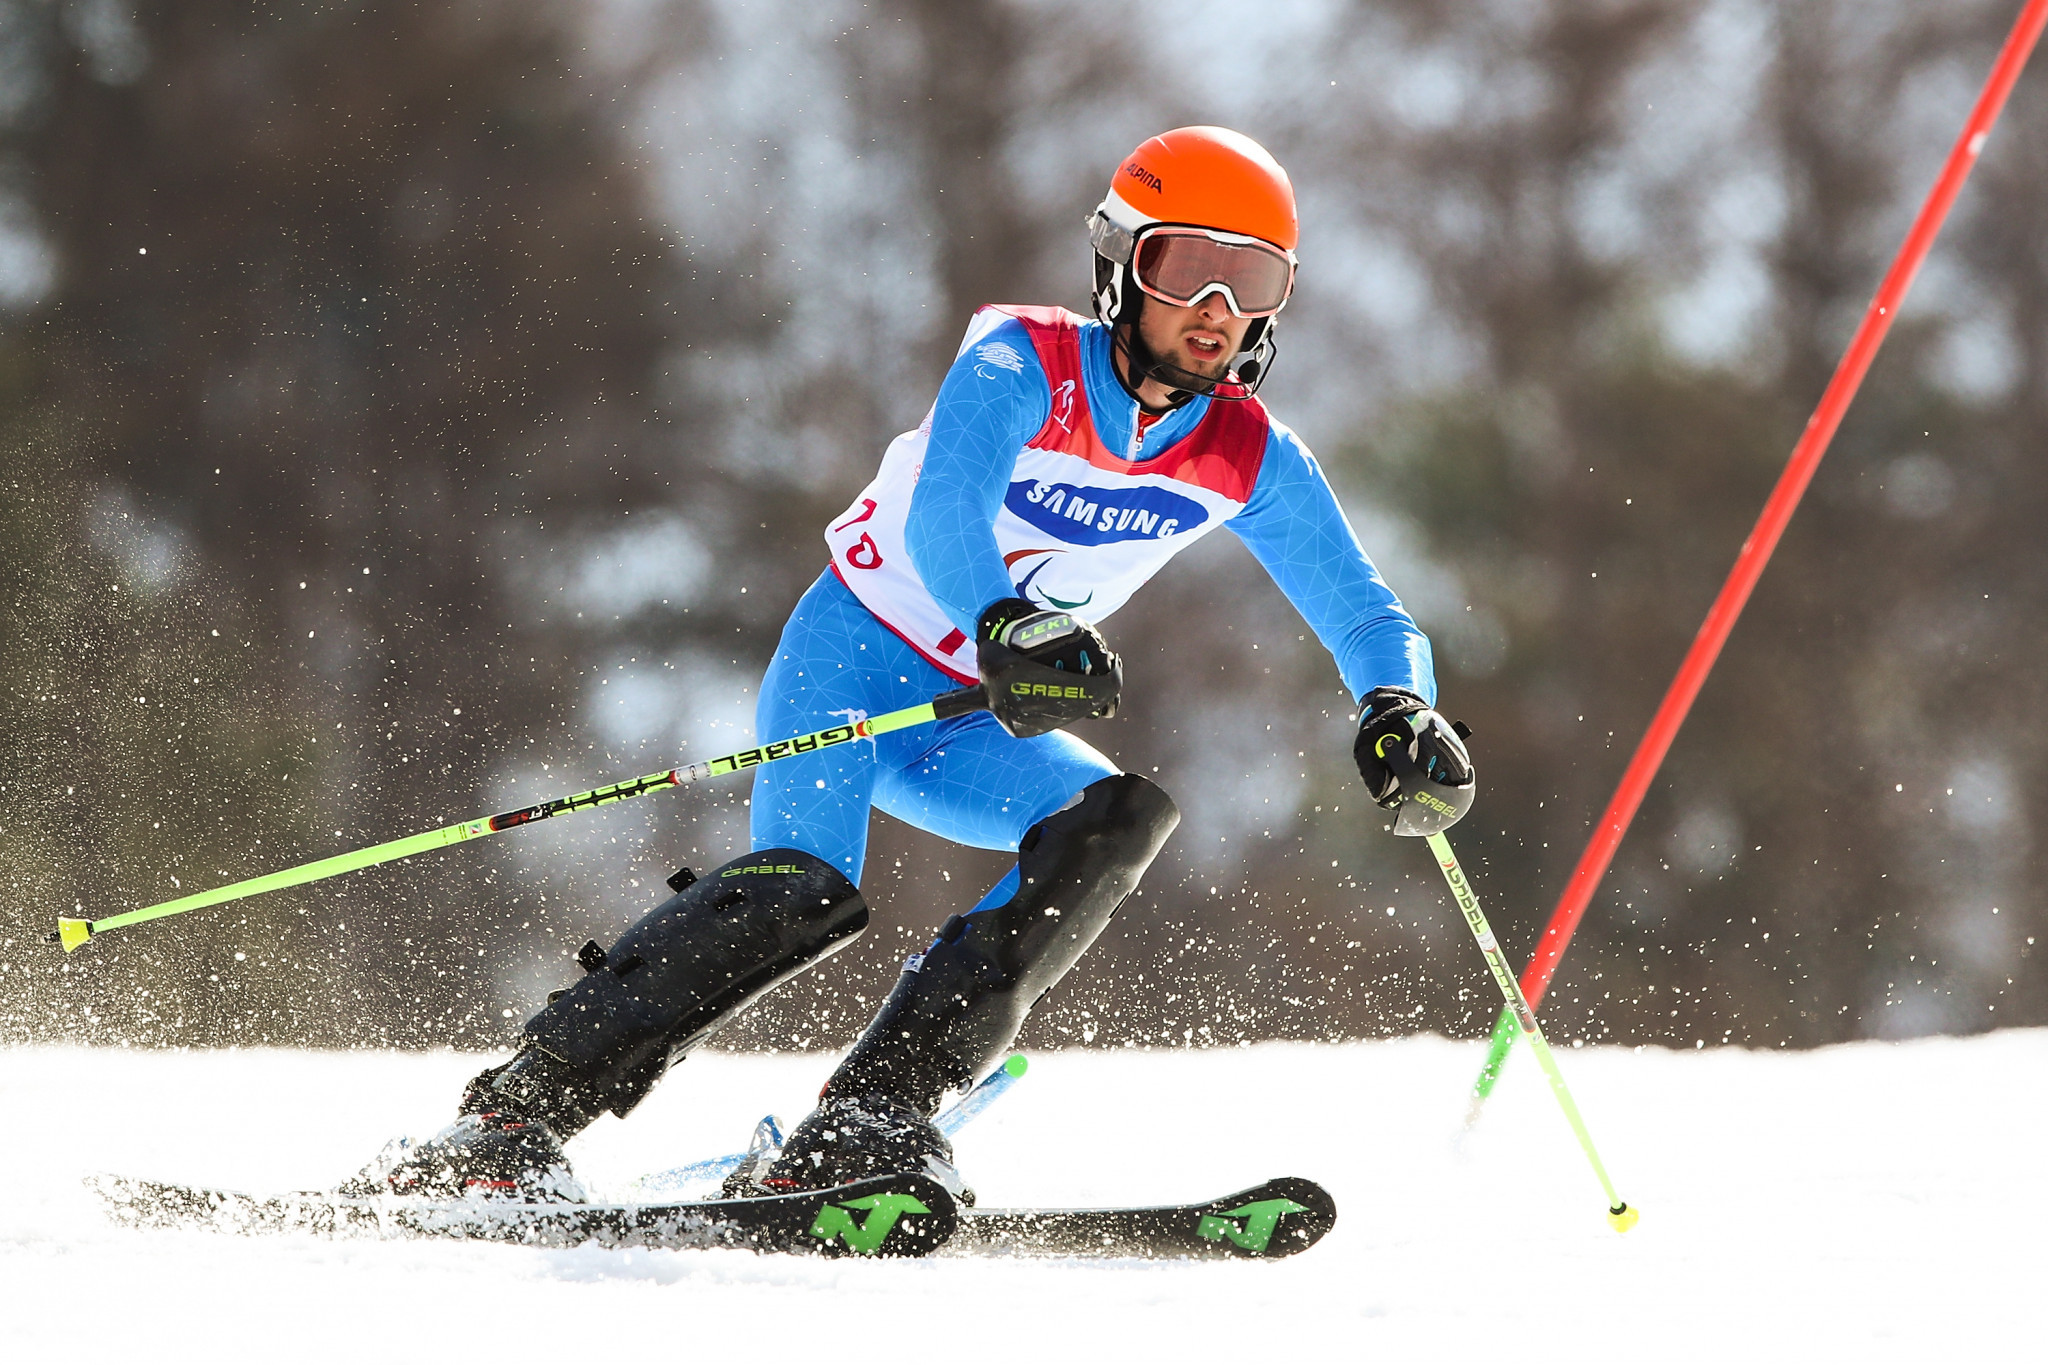 Bertagnolli completes hat-trick at World Para Alpine Skiing World Cup